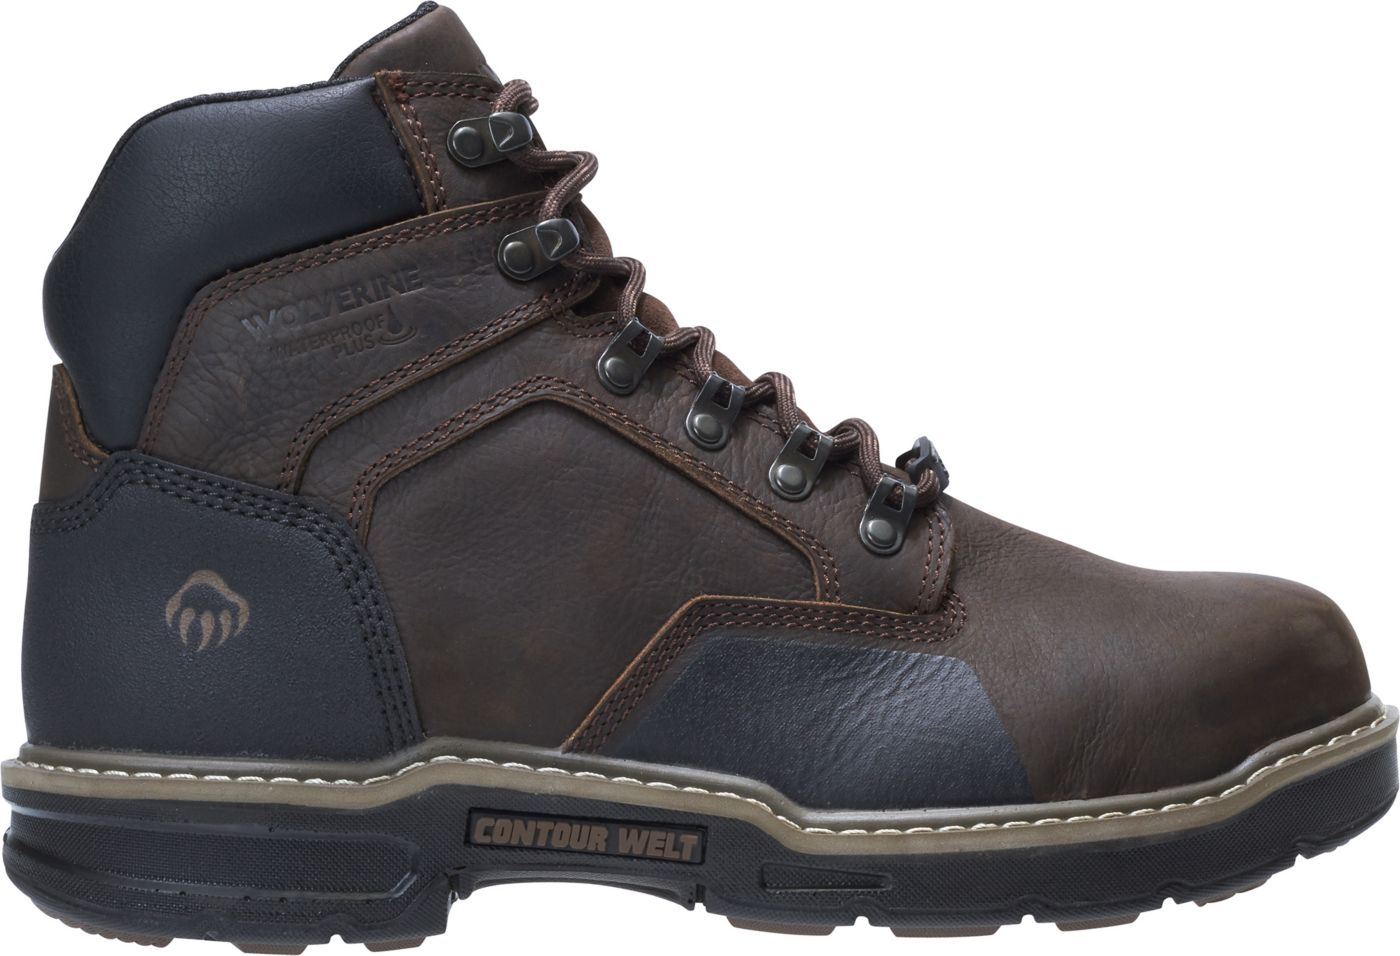 Wolverine Men's Bandit 6'' 400g Waterproof Composite Toe Work Boots